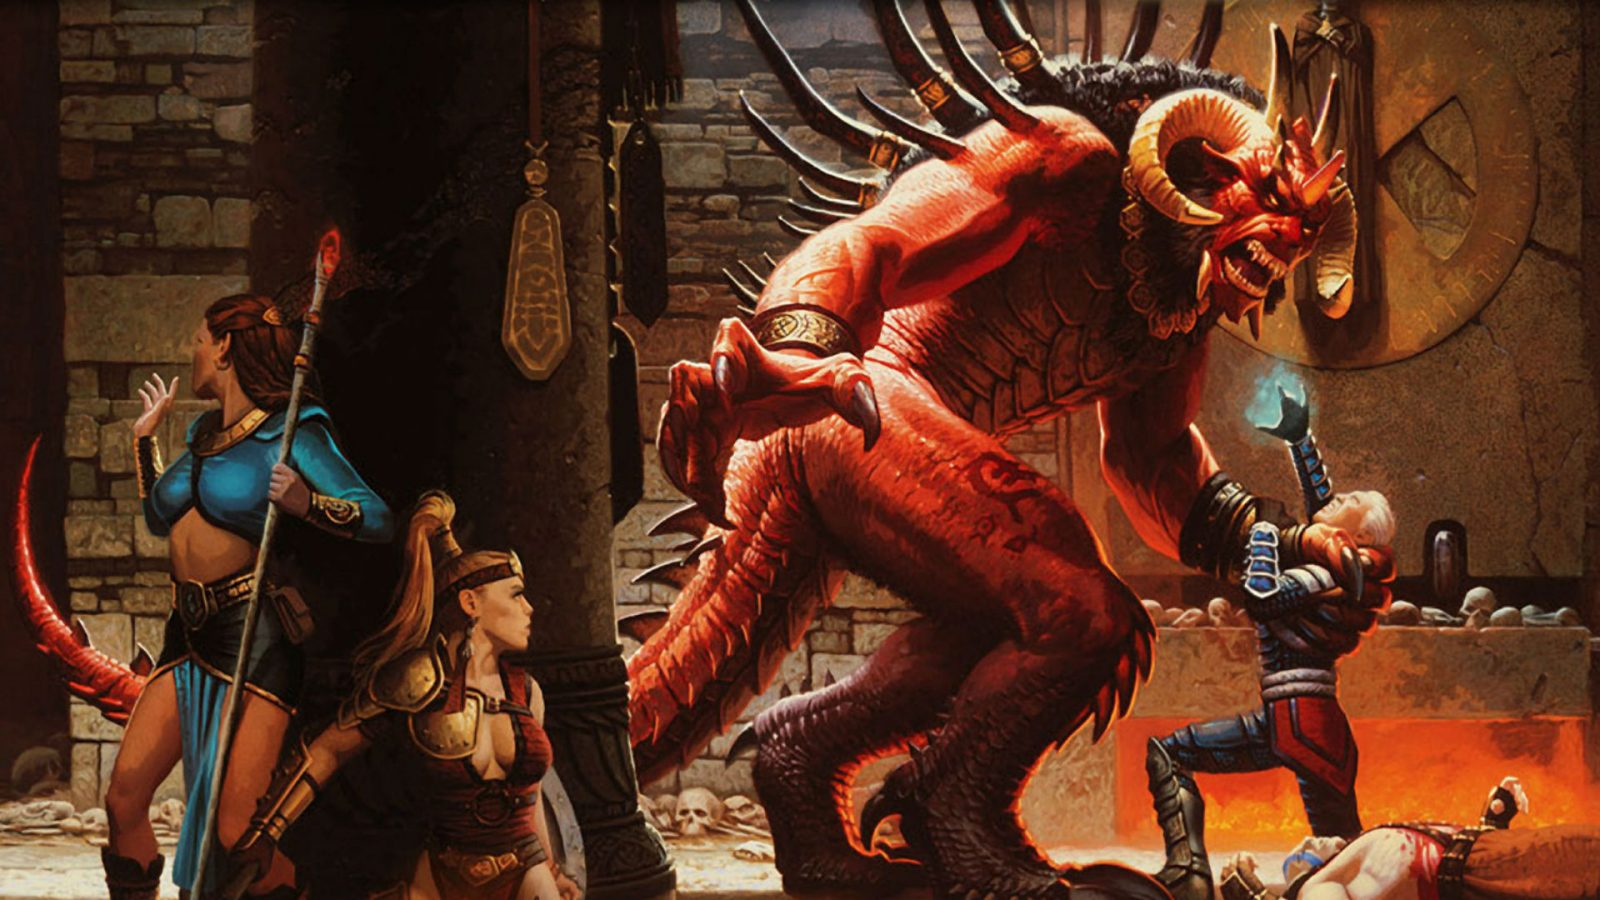 That is what Diablo 2 would possibly appear like if it was remastered